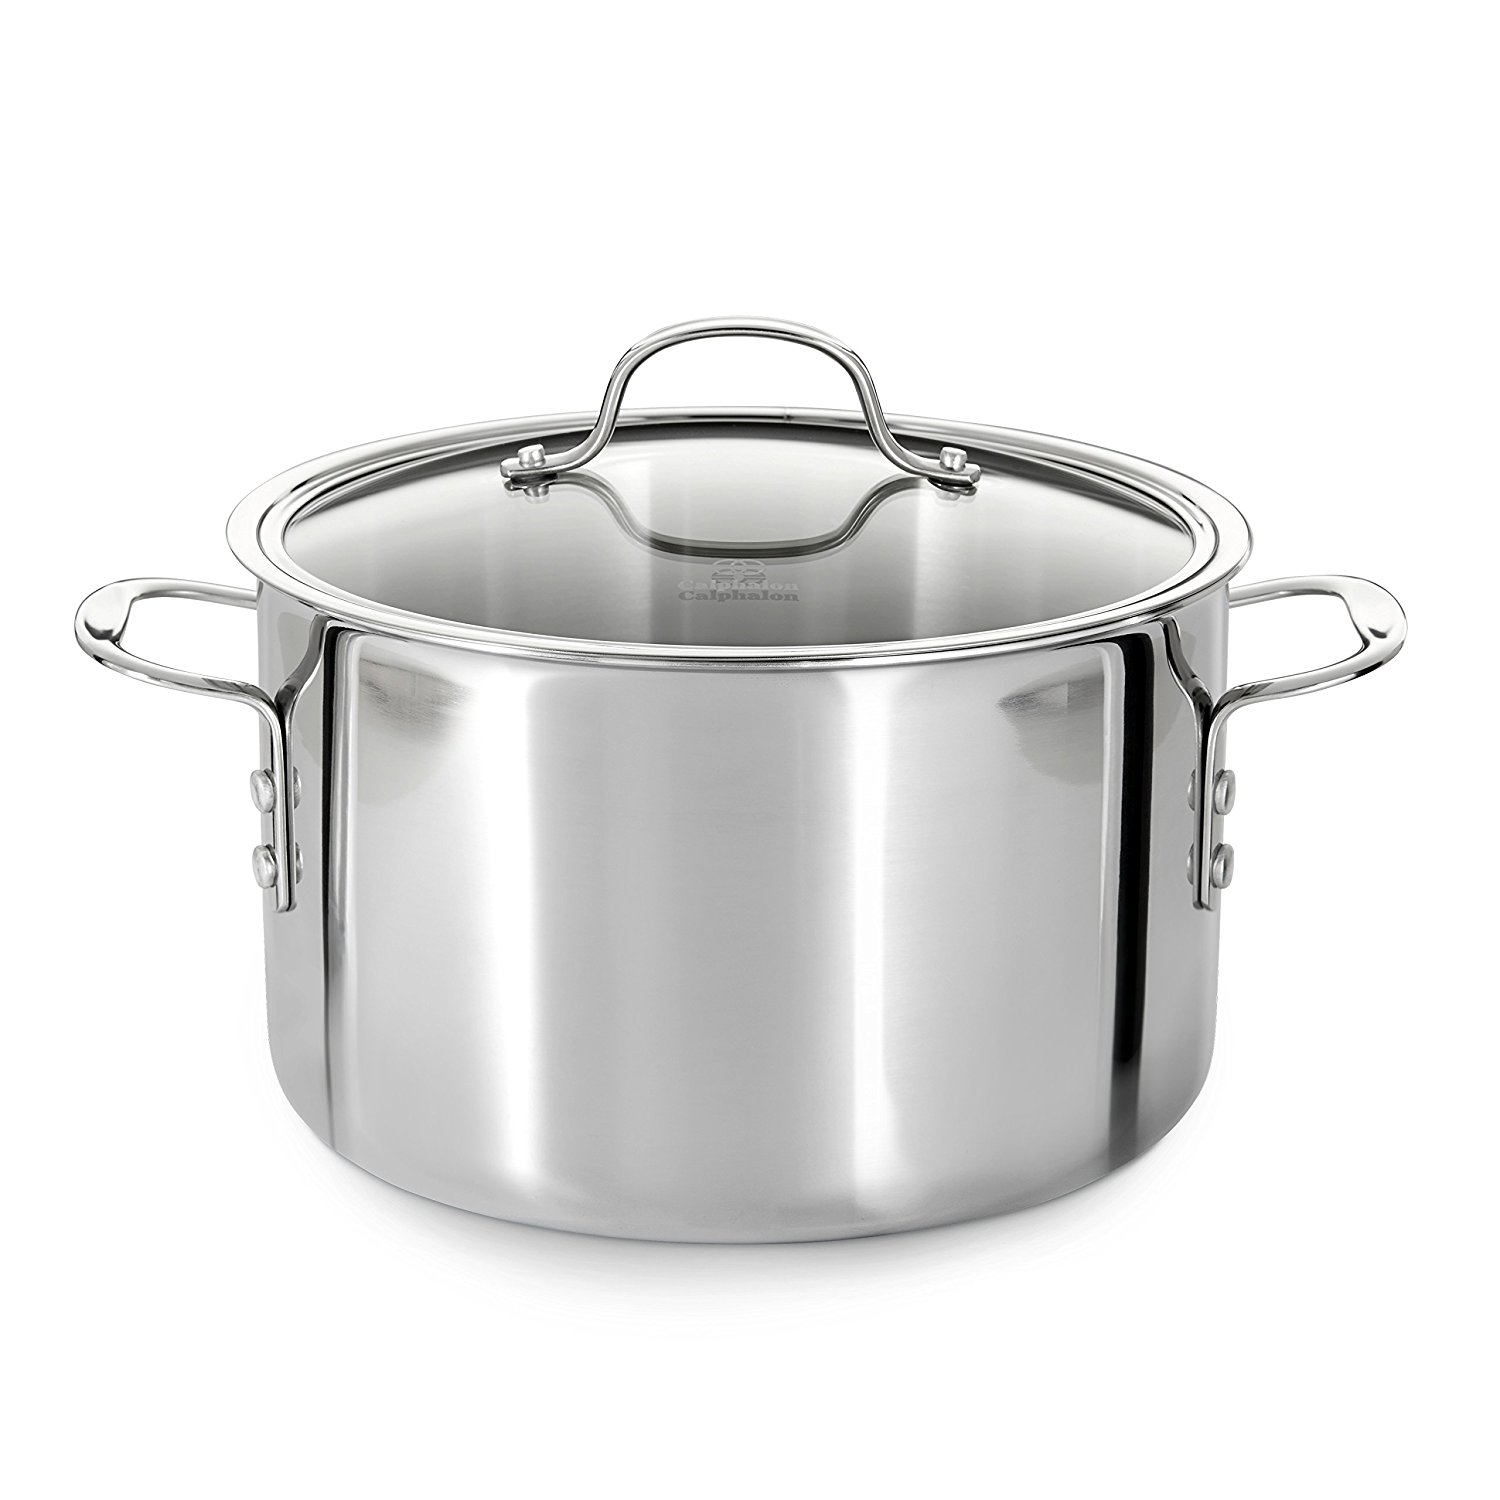 Calphalon Tri-Ply Stainless Steel Stock Pot